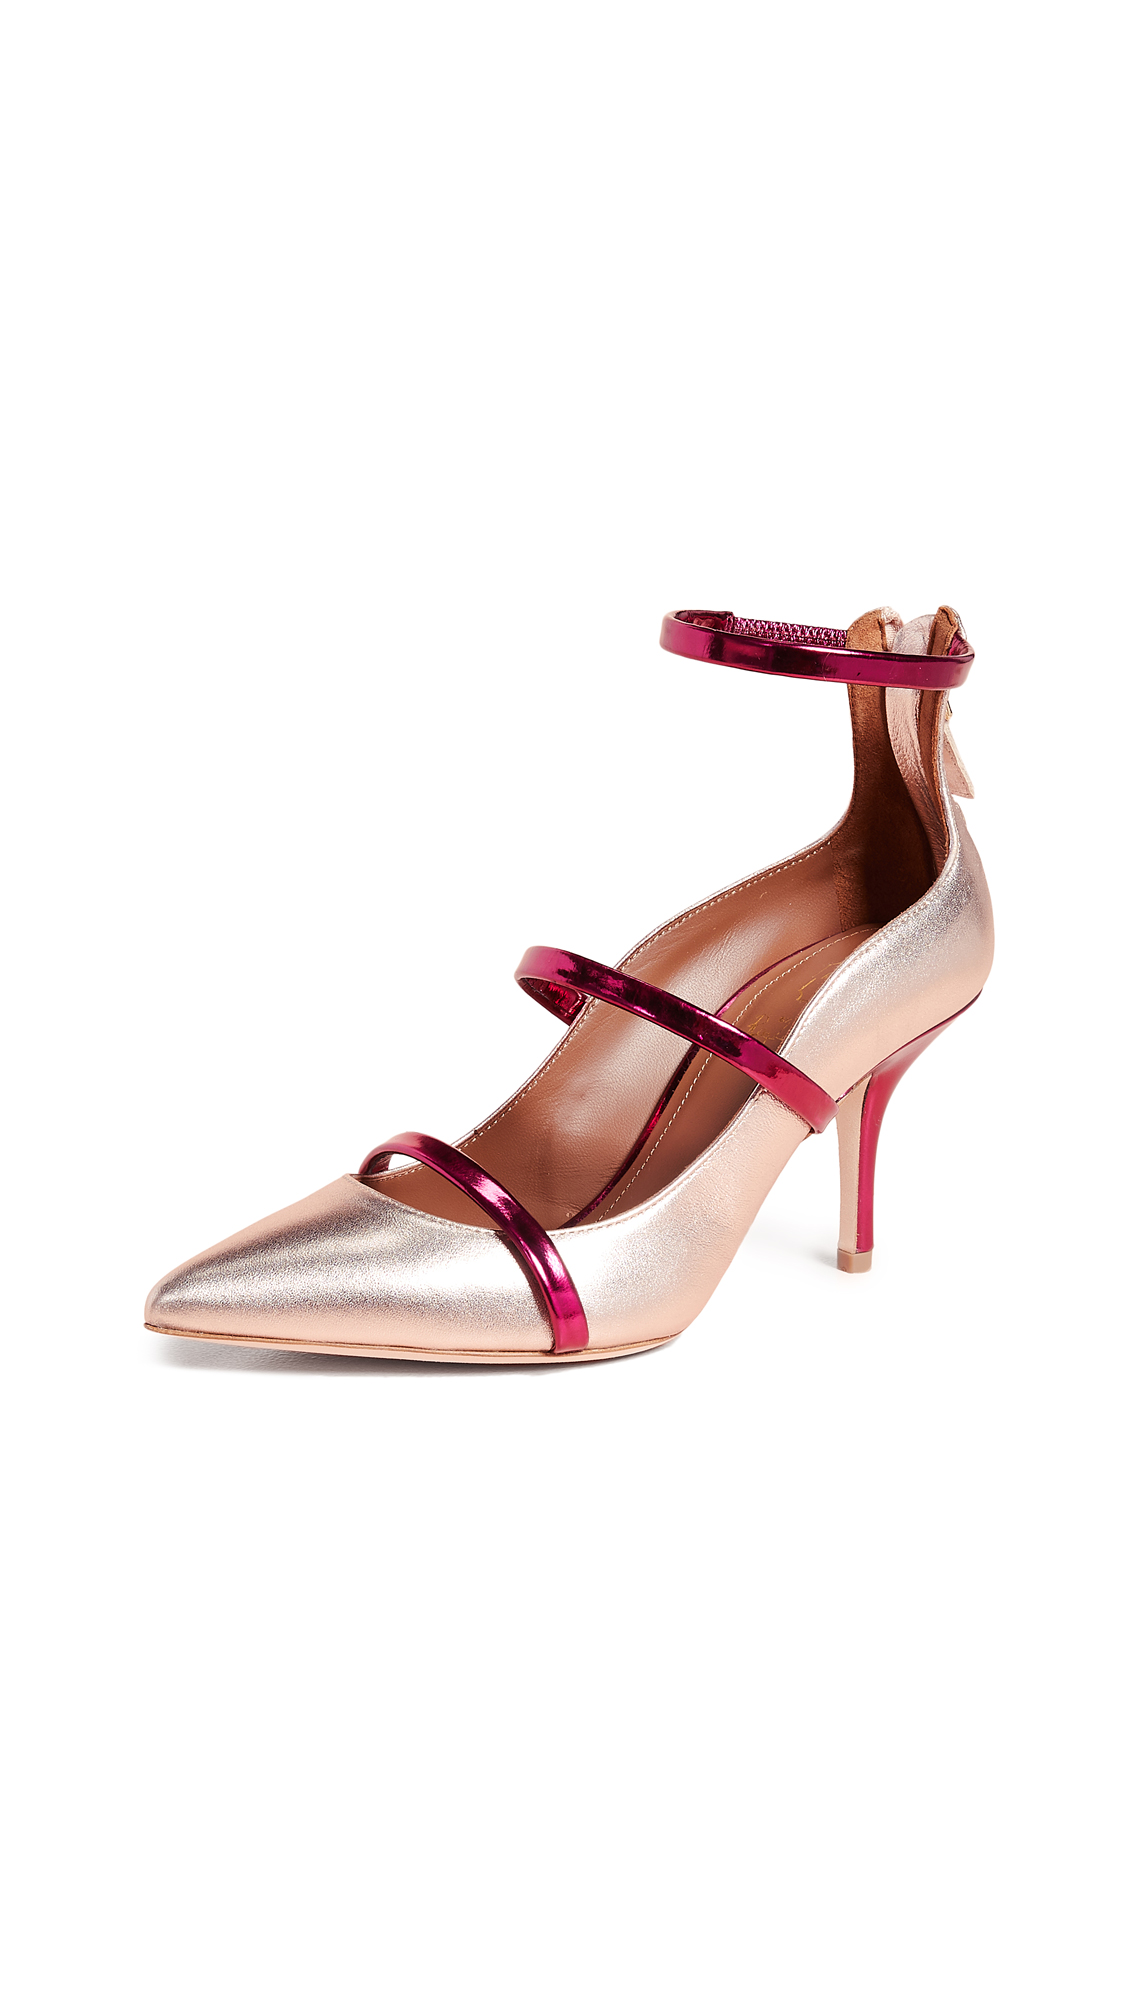 Malone Souliers by Roy Luwolt Robyn Pumps - Rose/Berry